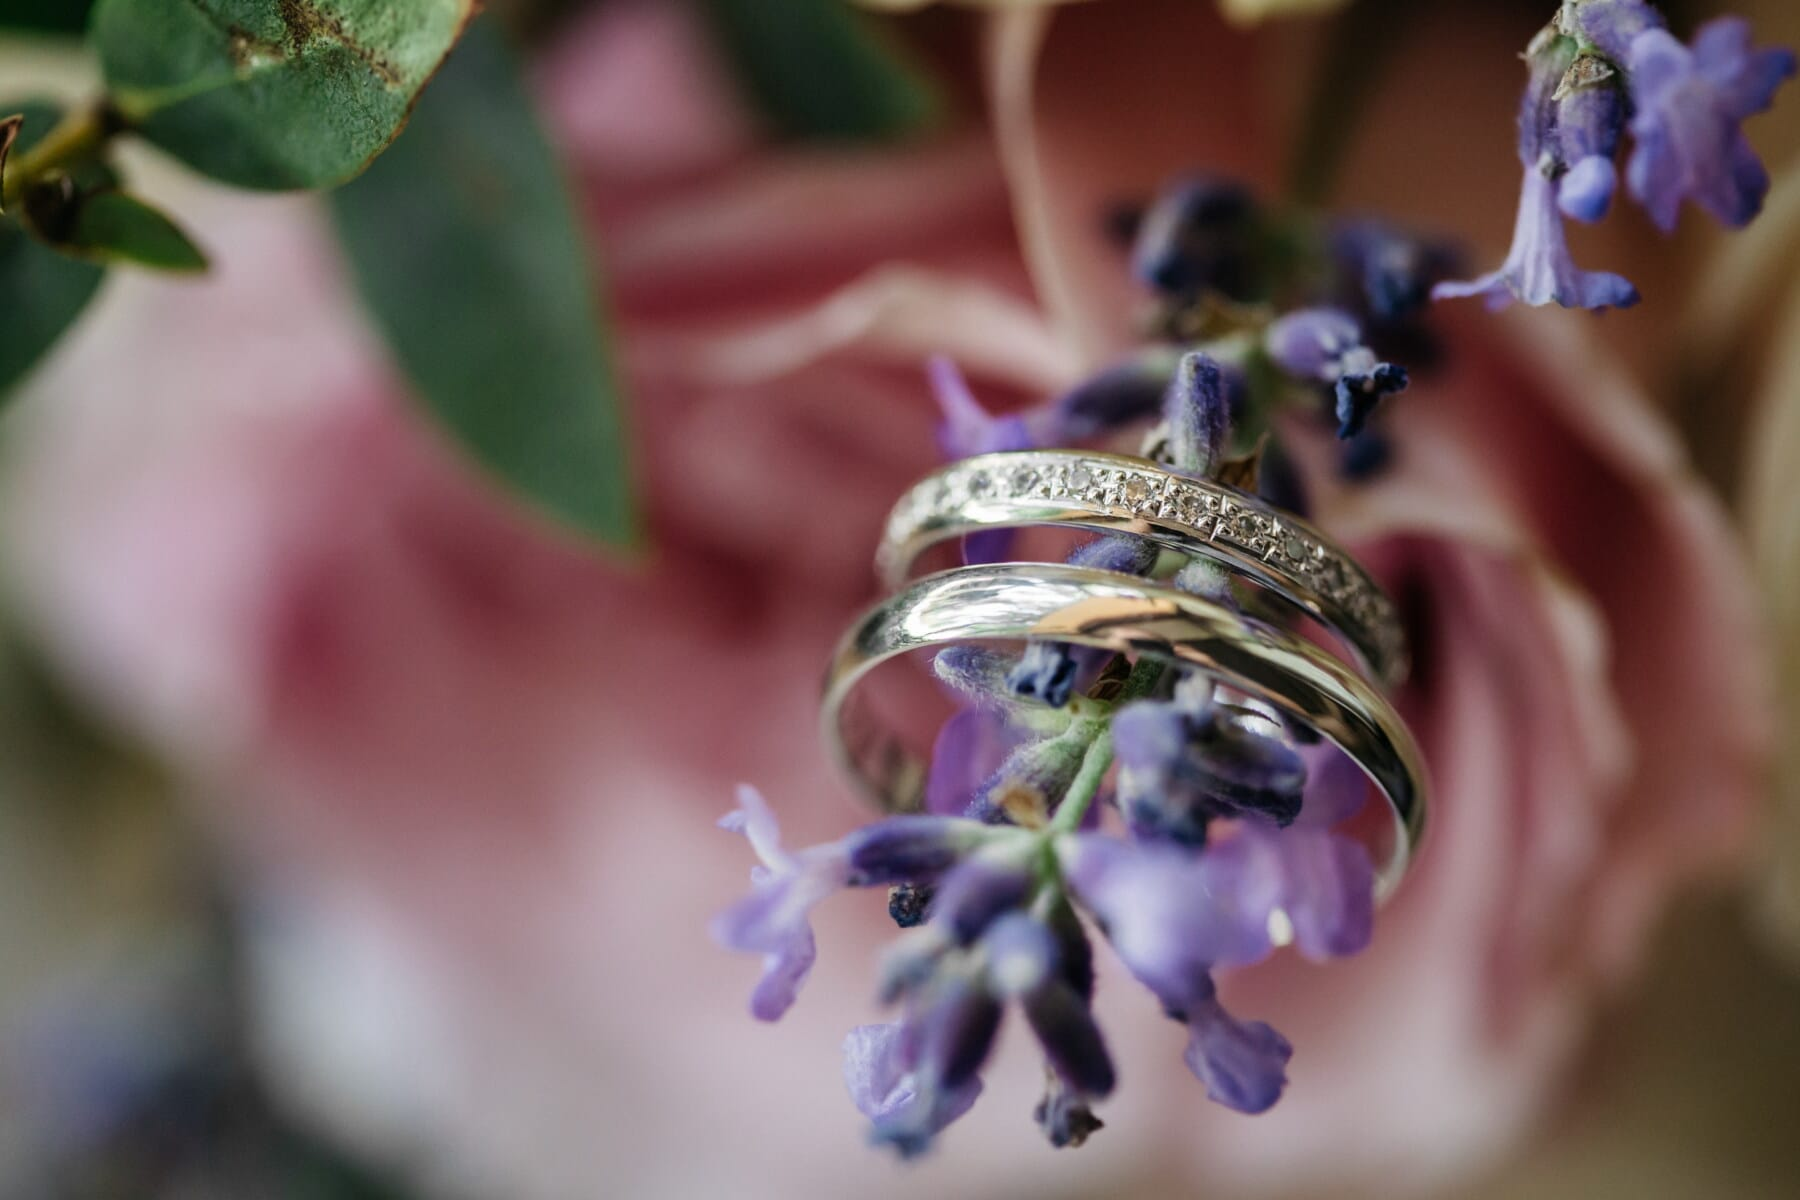 golden shine, wedding ring, gold, close-up, flower, lavender, jewelry, rings, herb, color